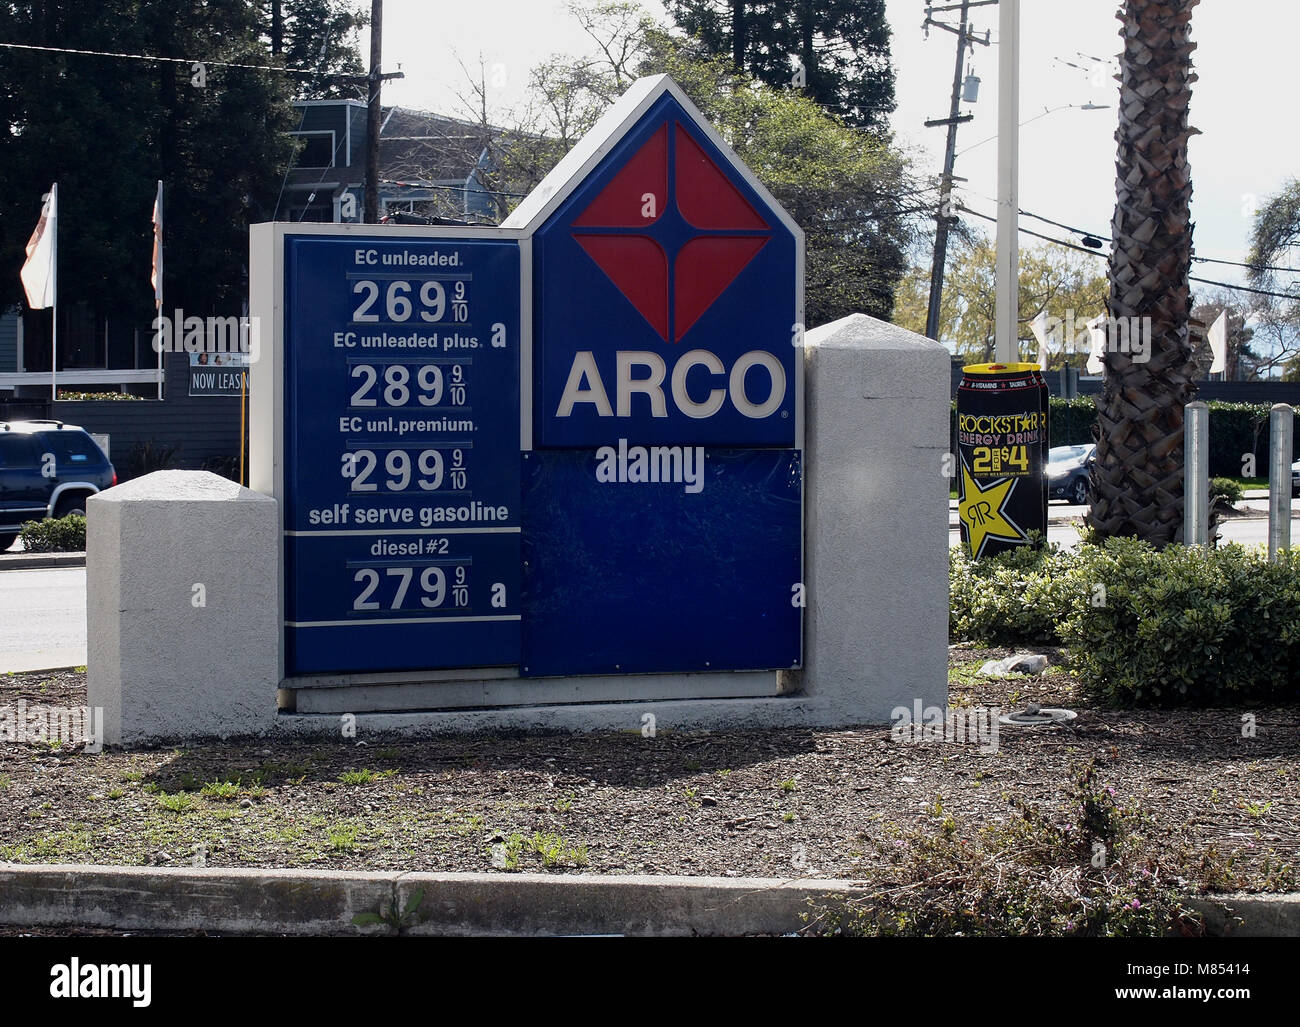 Arco Gas Prices >> Richfield Stock Photos & Richfield Stock Images - Alamy